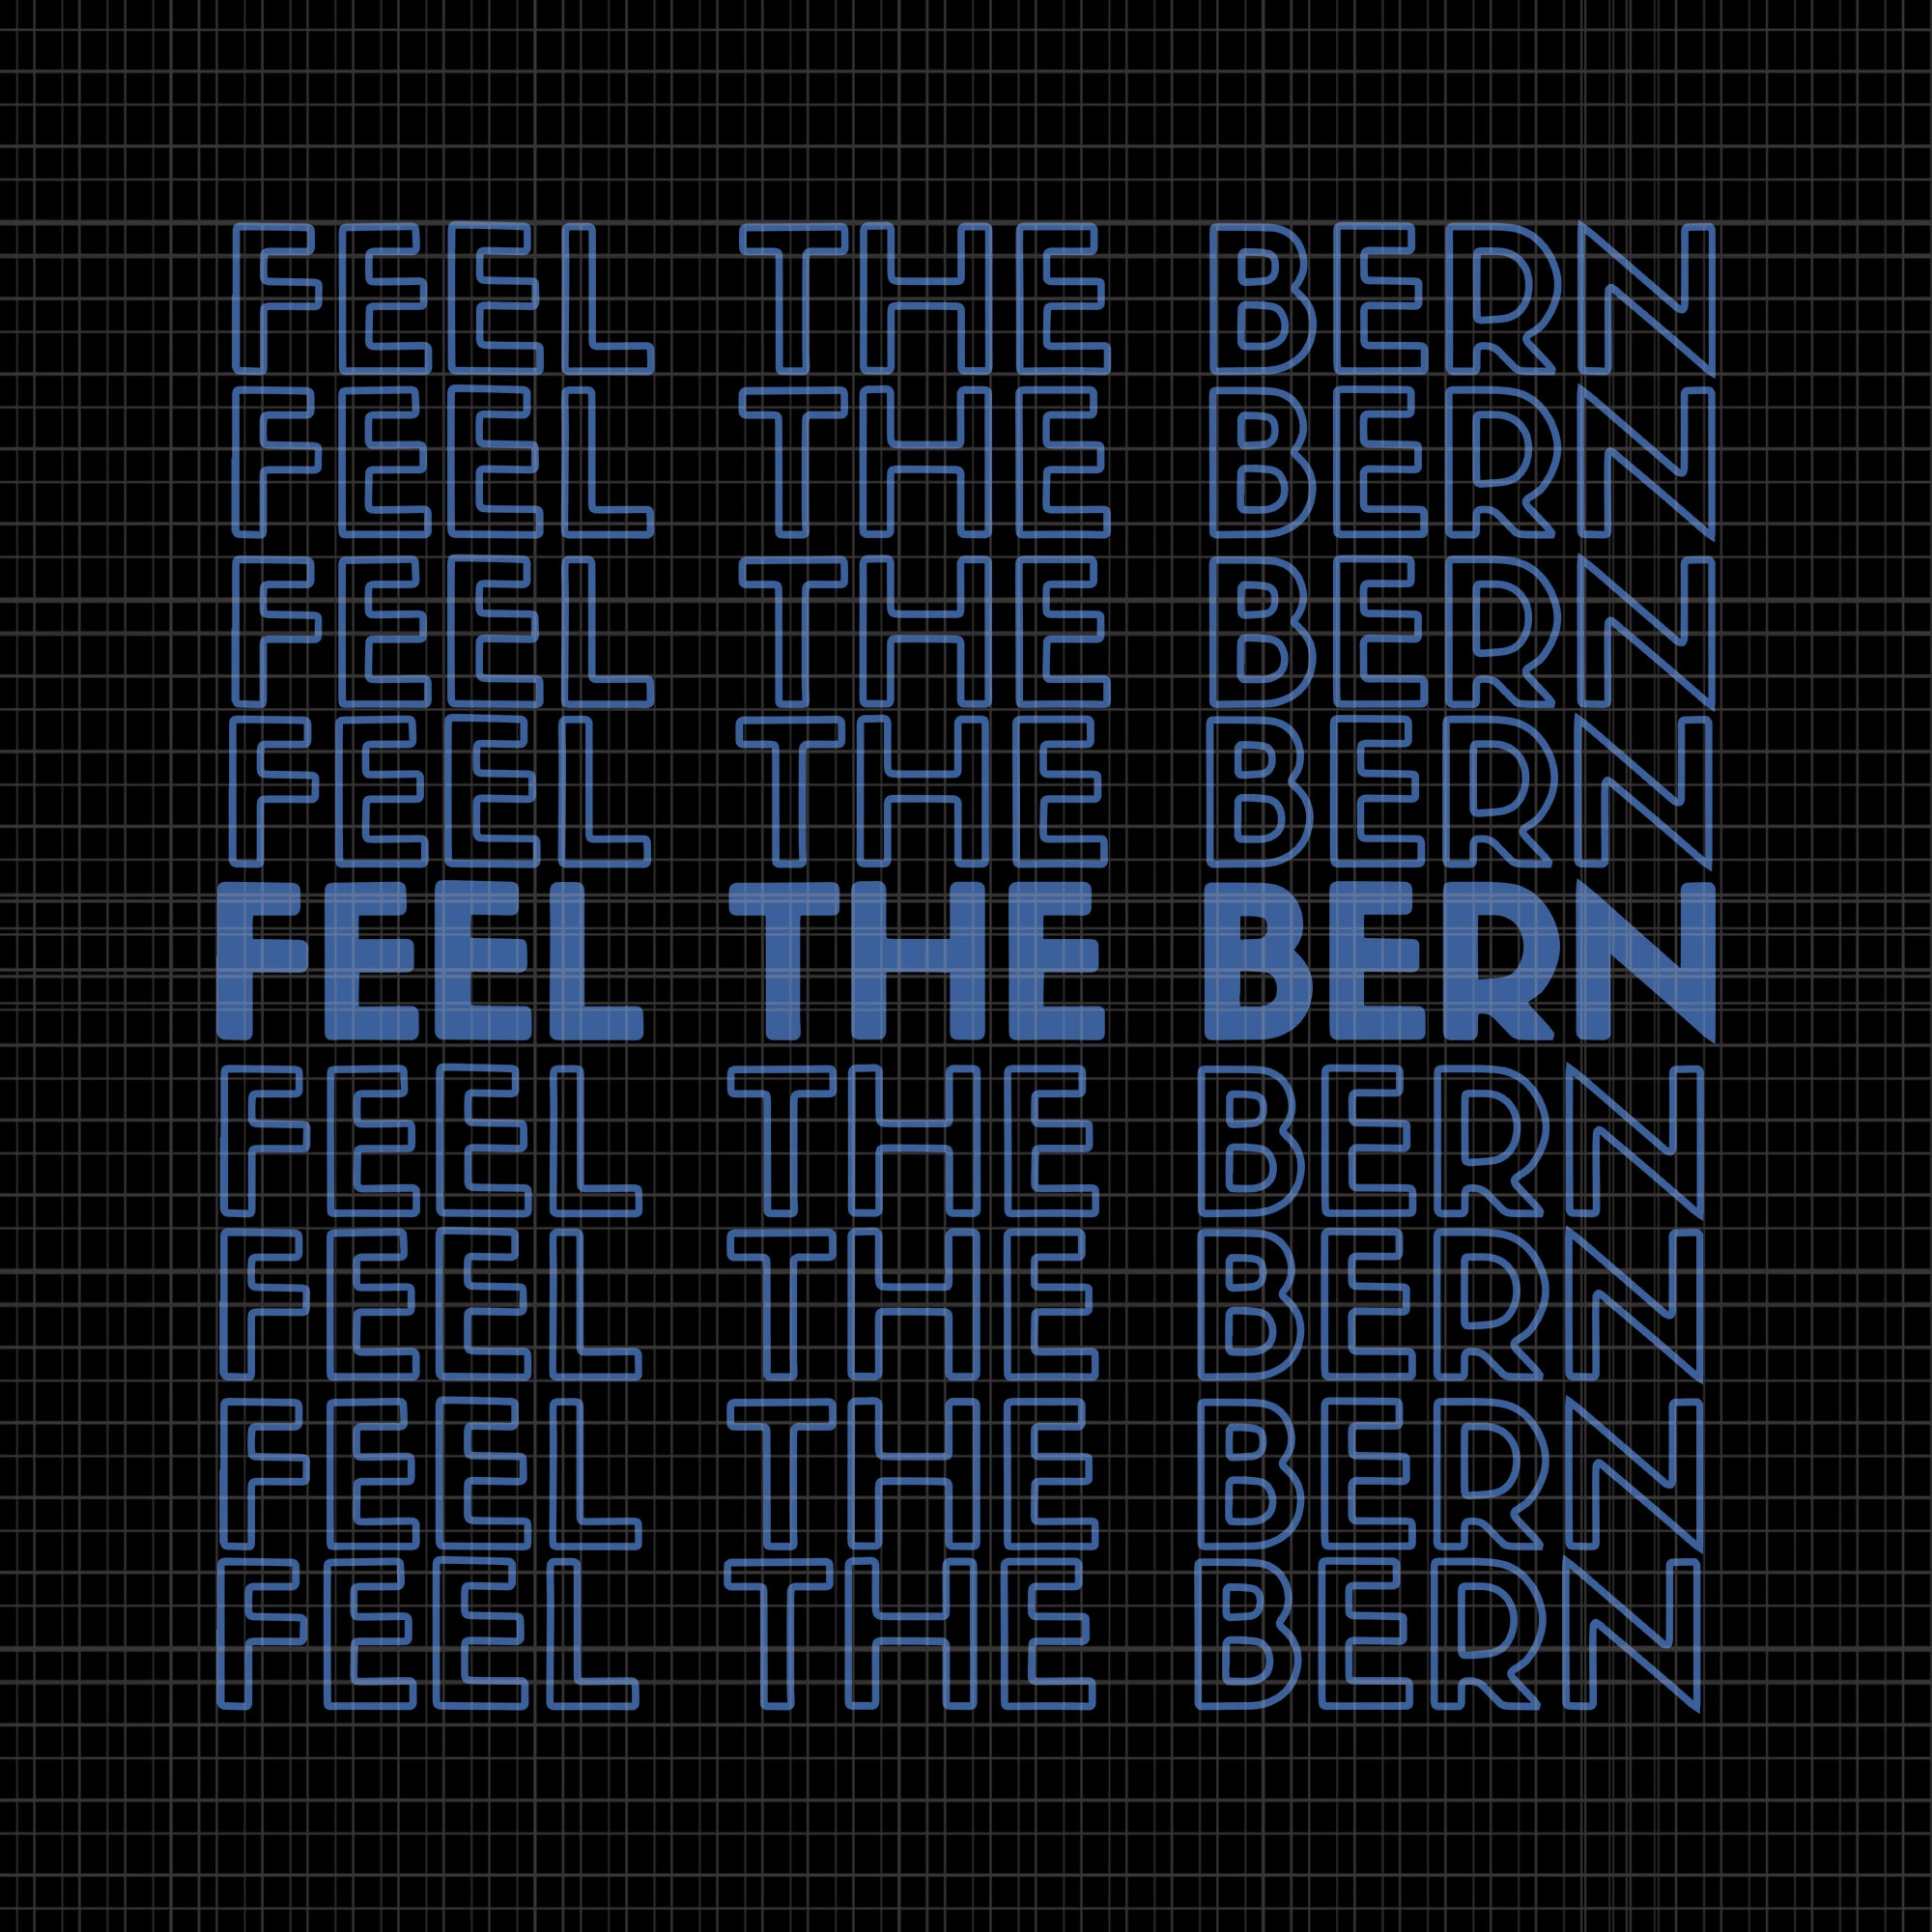 Feel the bern svg,feel the bern png,feel the bern vector,bernie fell the bern png,bernie sanders feel the bern vintage retro bernie 2020